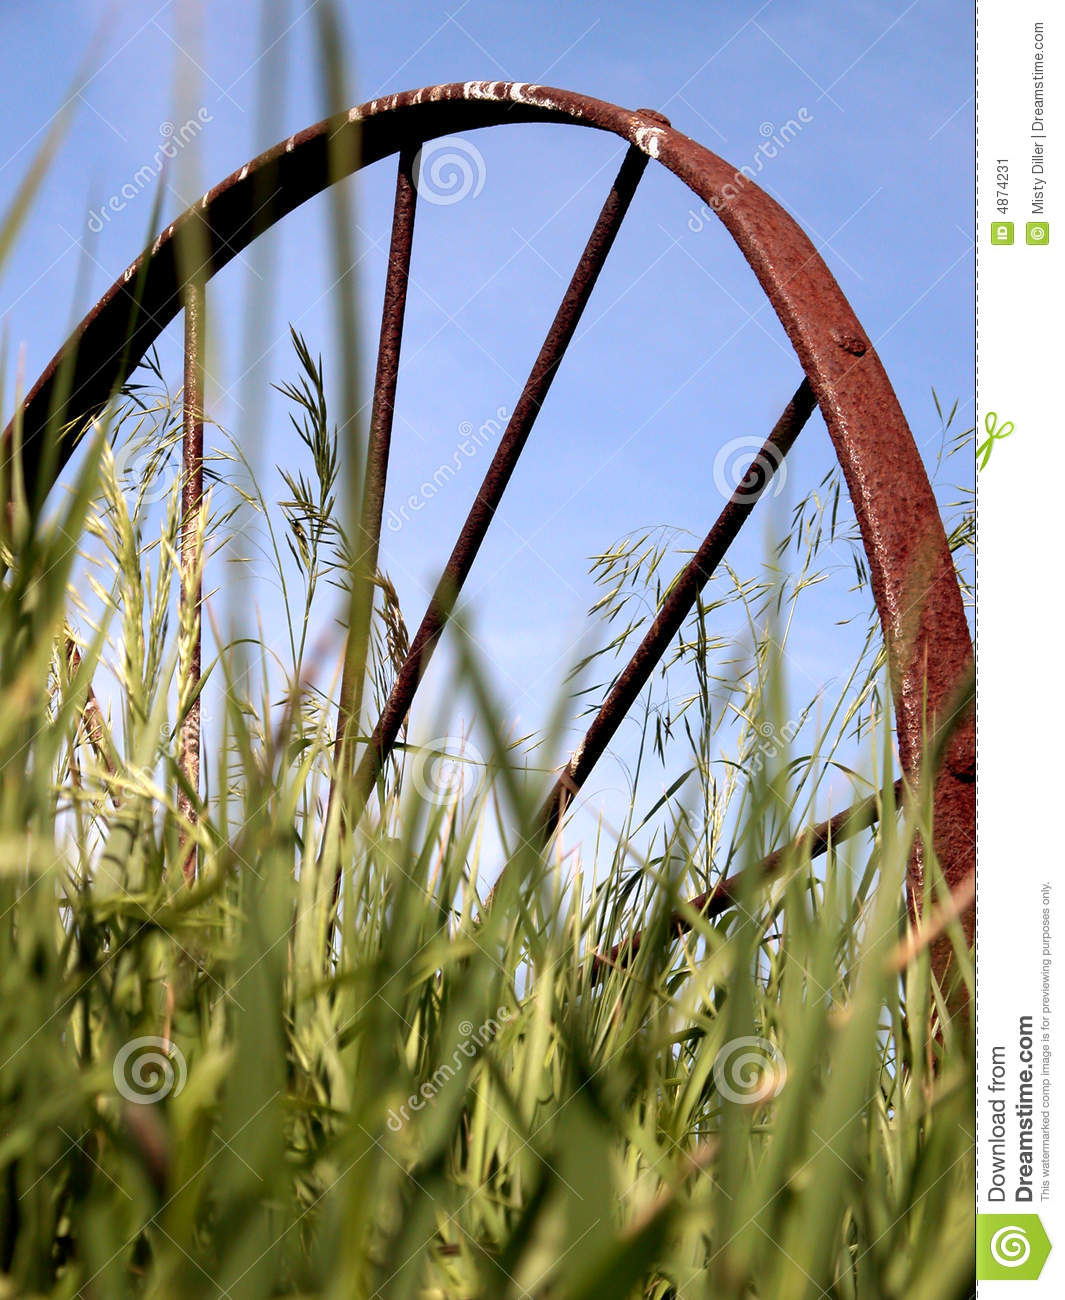 Download Old Wagon Wheel in Grass stock image. Image of blue, heritage - 4874231